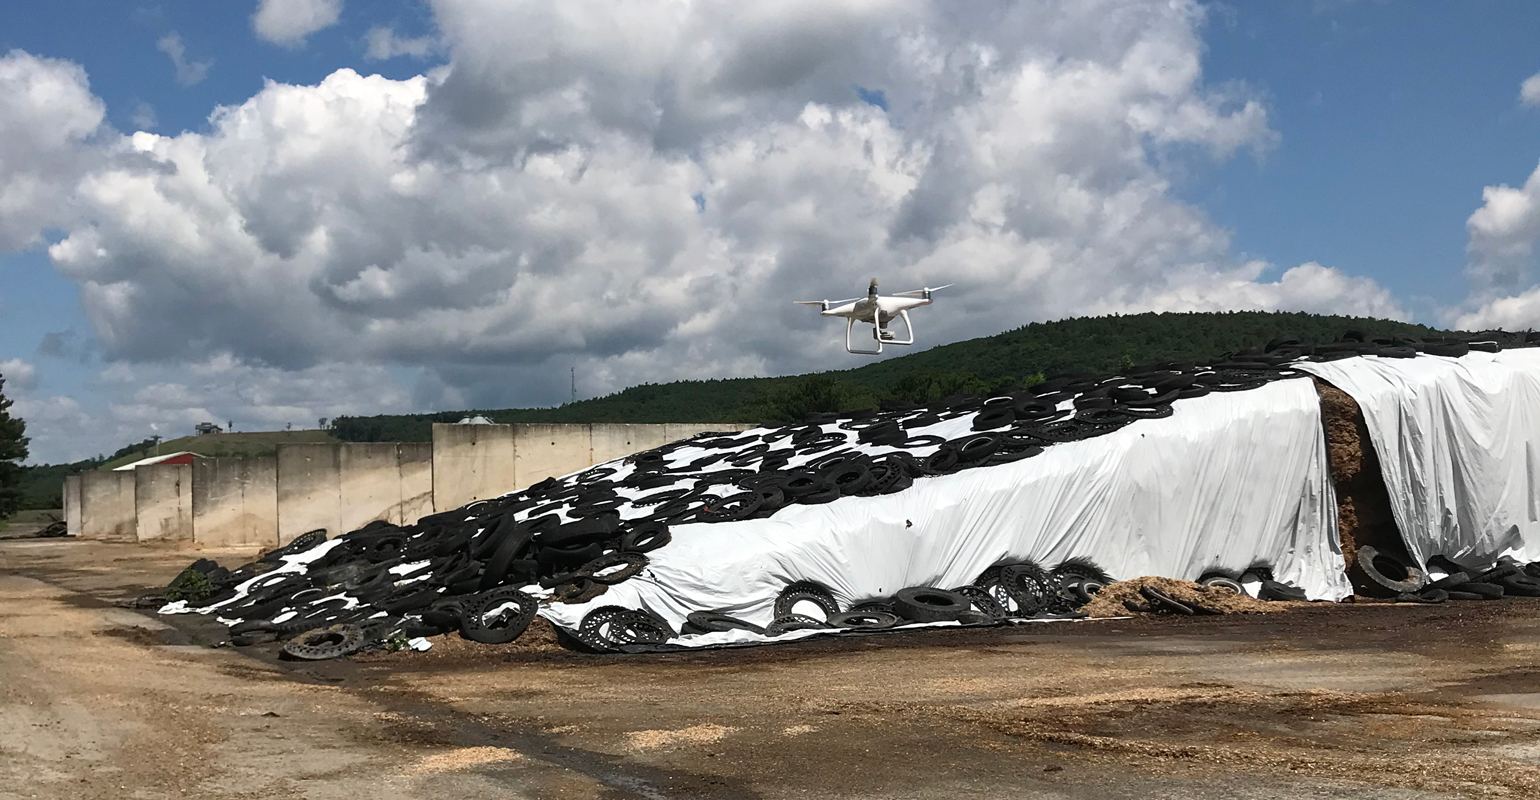 An Aurox drone performs a lower-accuracy flight over feed in a bunk silo